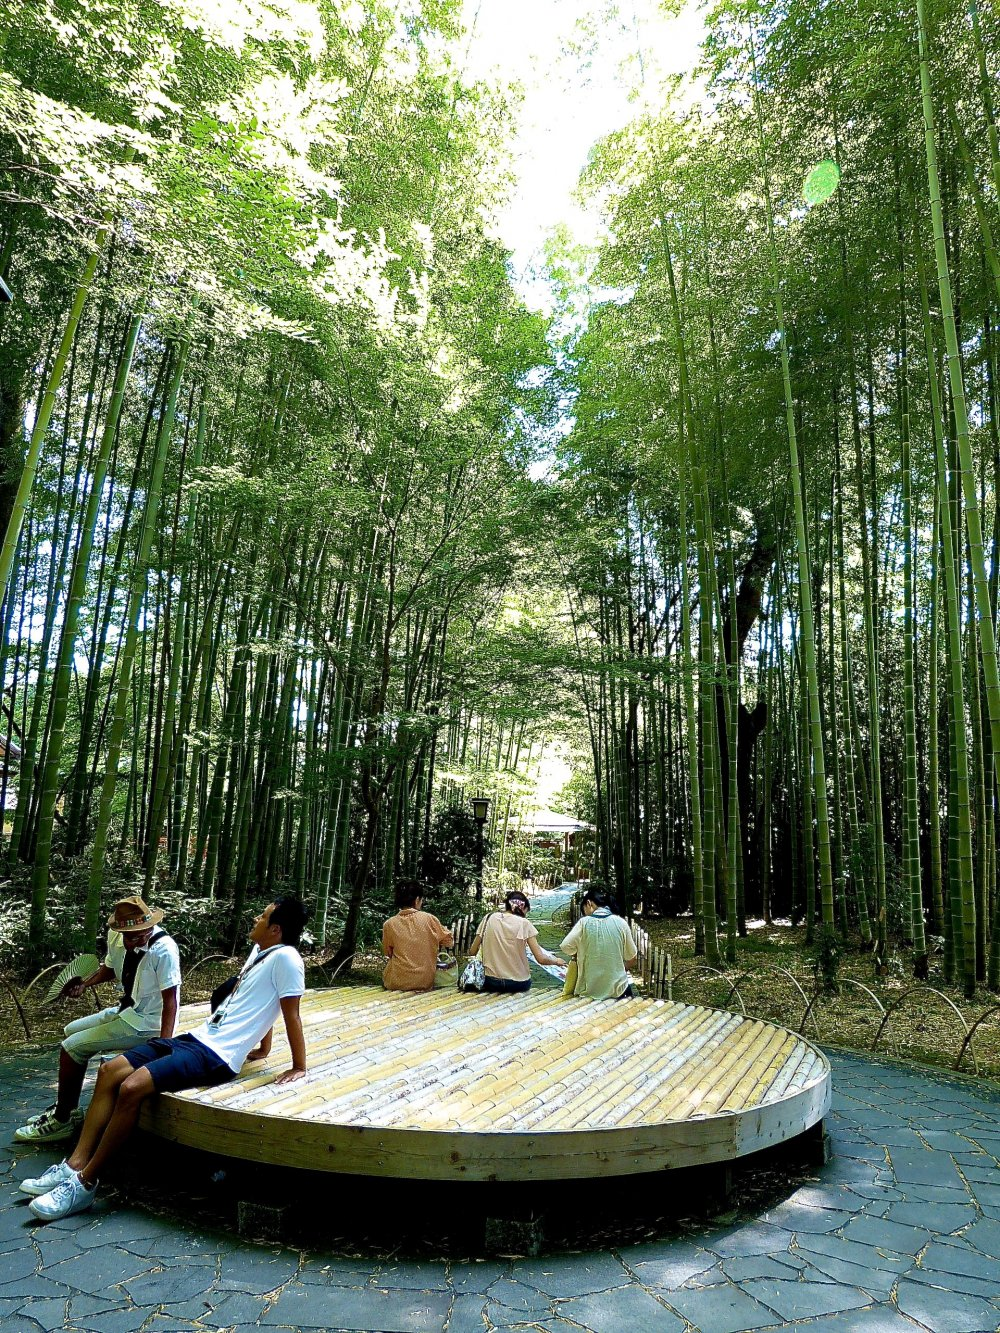 Round bench along the bamboo path